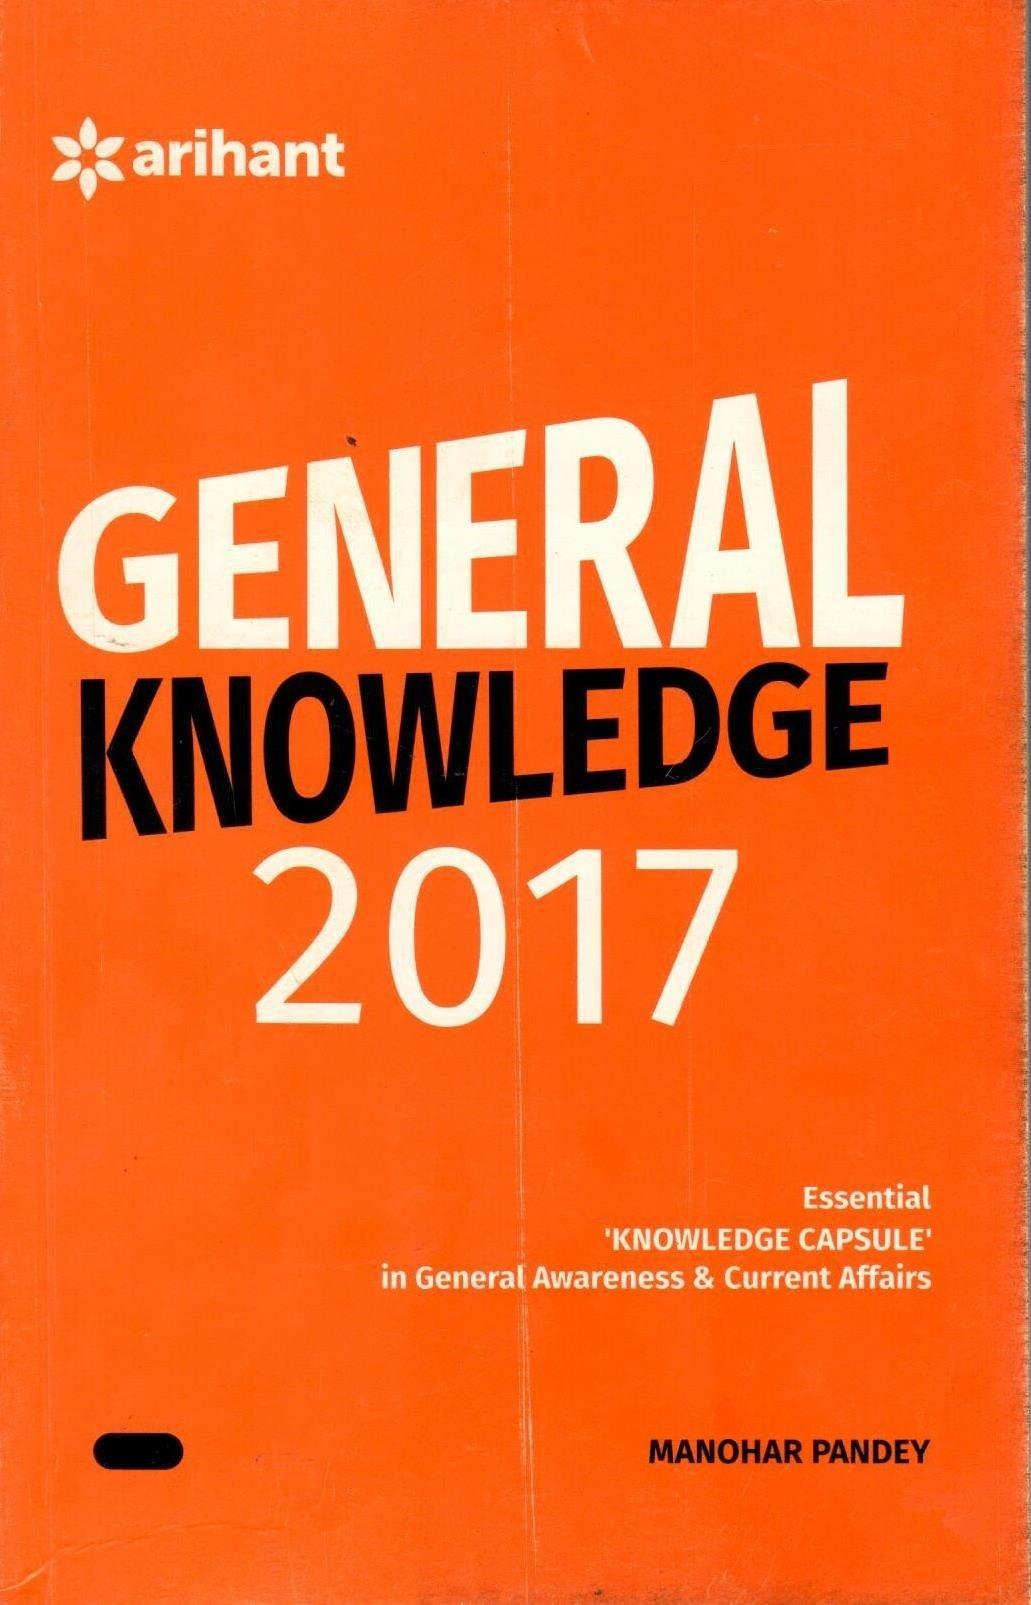 General Knowledge 2017 Essential 'Knowledge Capsule' in General Awareness & Current Affairs price in India.